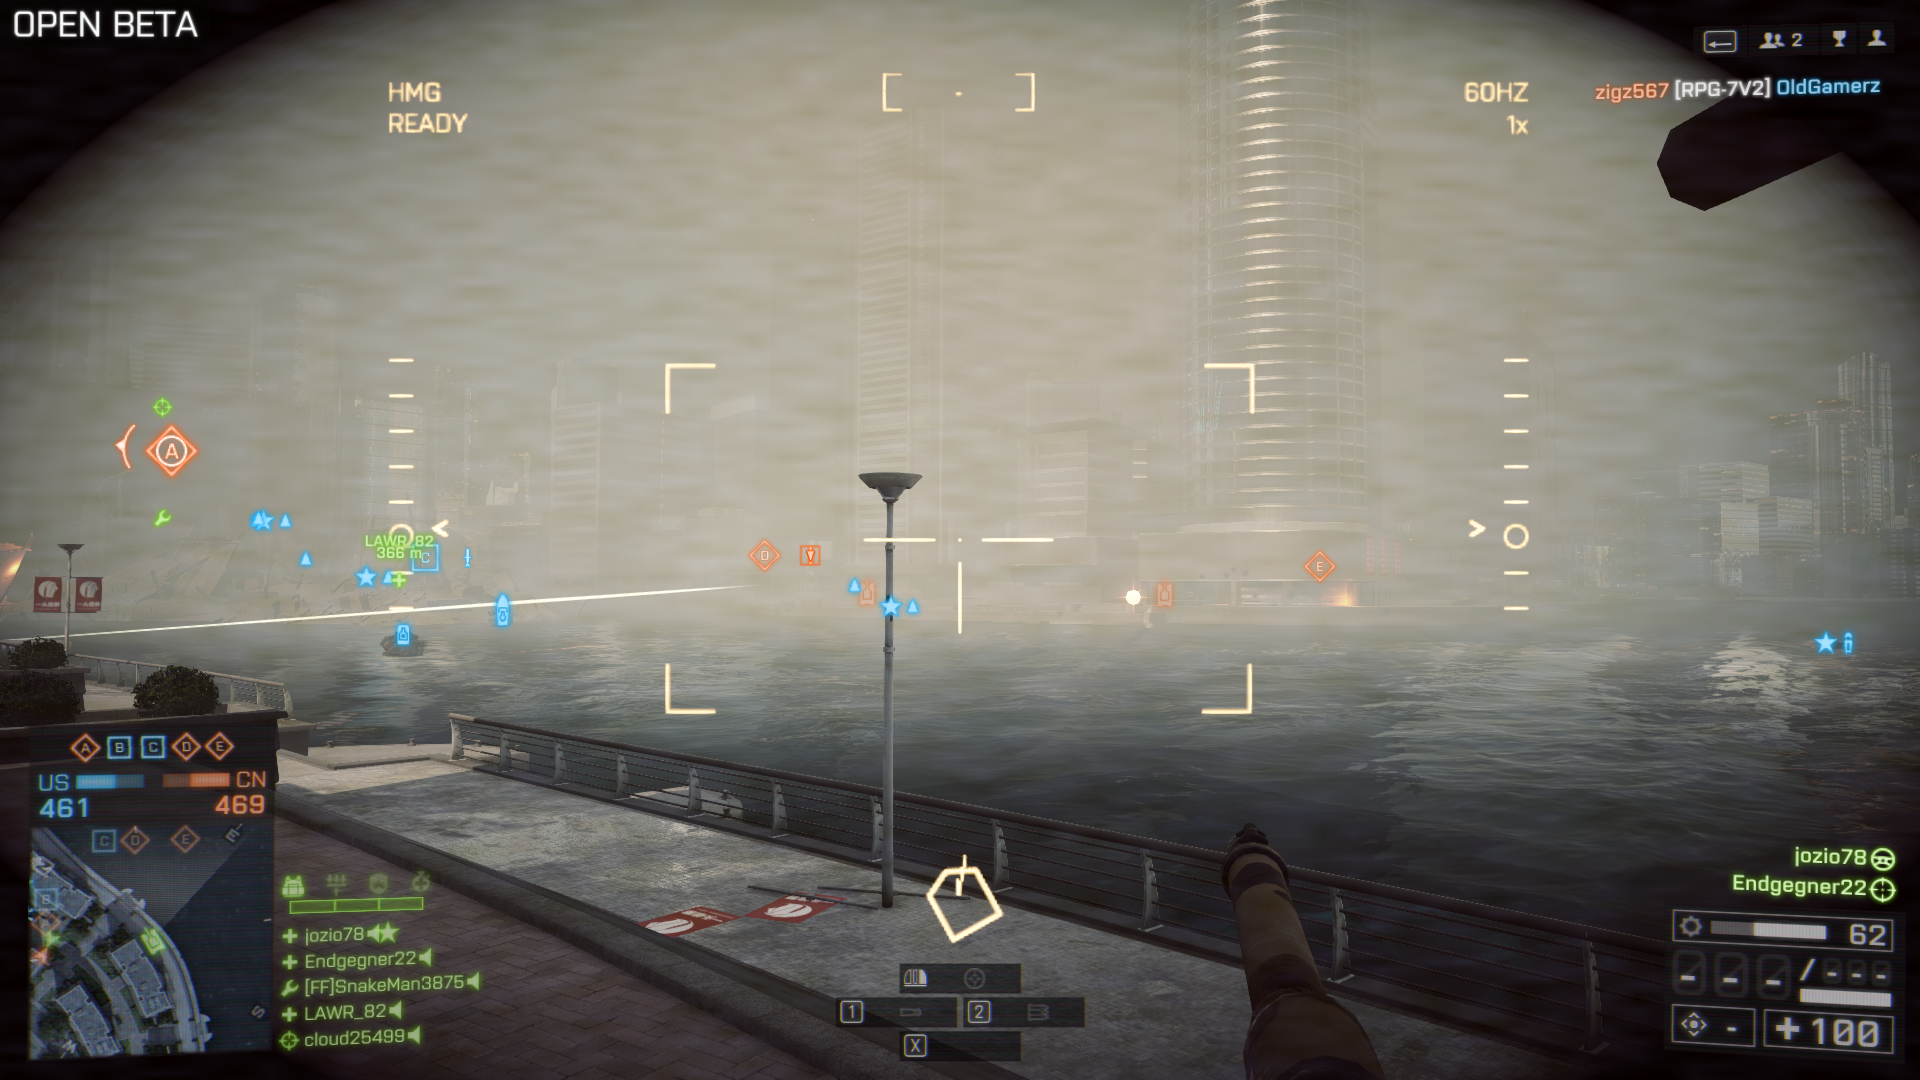 http://endgegner.fightercom.de/BF4_Screenshot/Battlefield4OpenBeta08.png